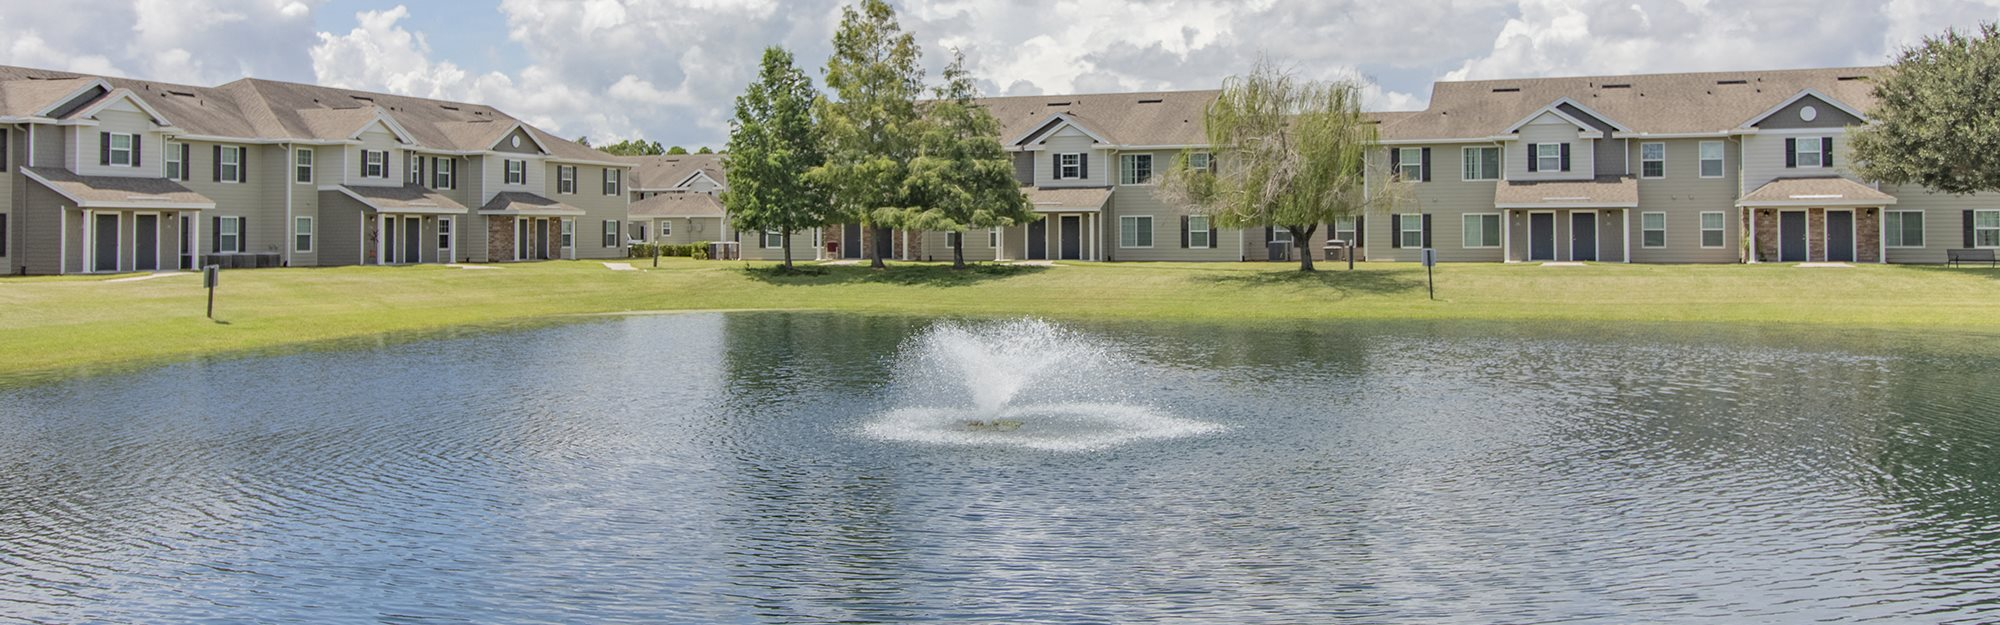 Malabar Cove Apartments for rent in Palm Bay, FL. Make this community your new home or visit other Concord Rents communities at ConcordRents.com. Lake view